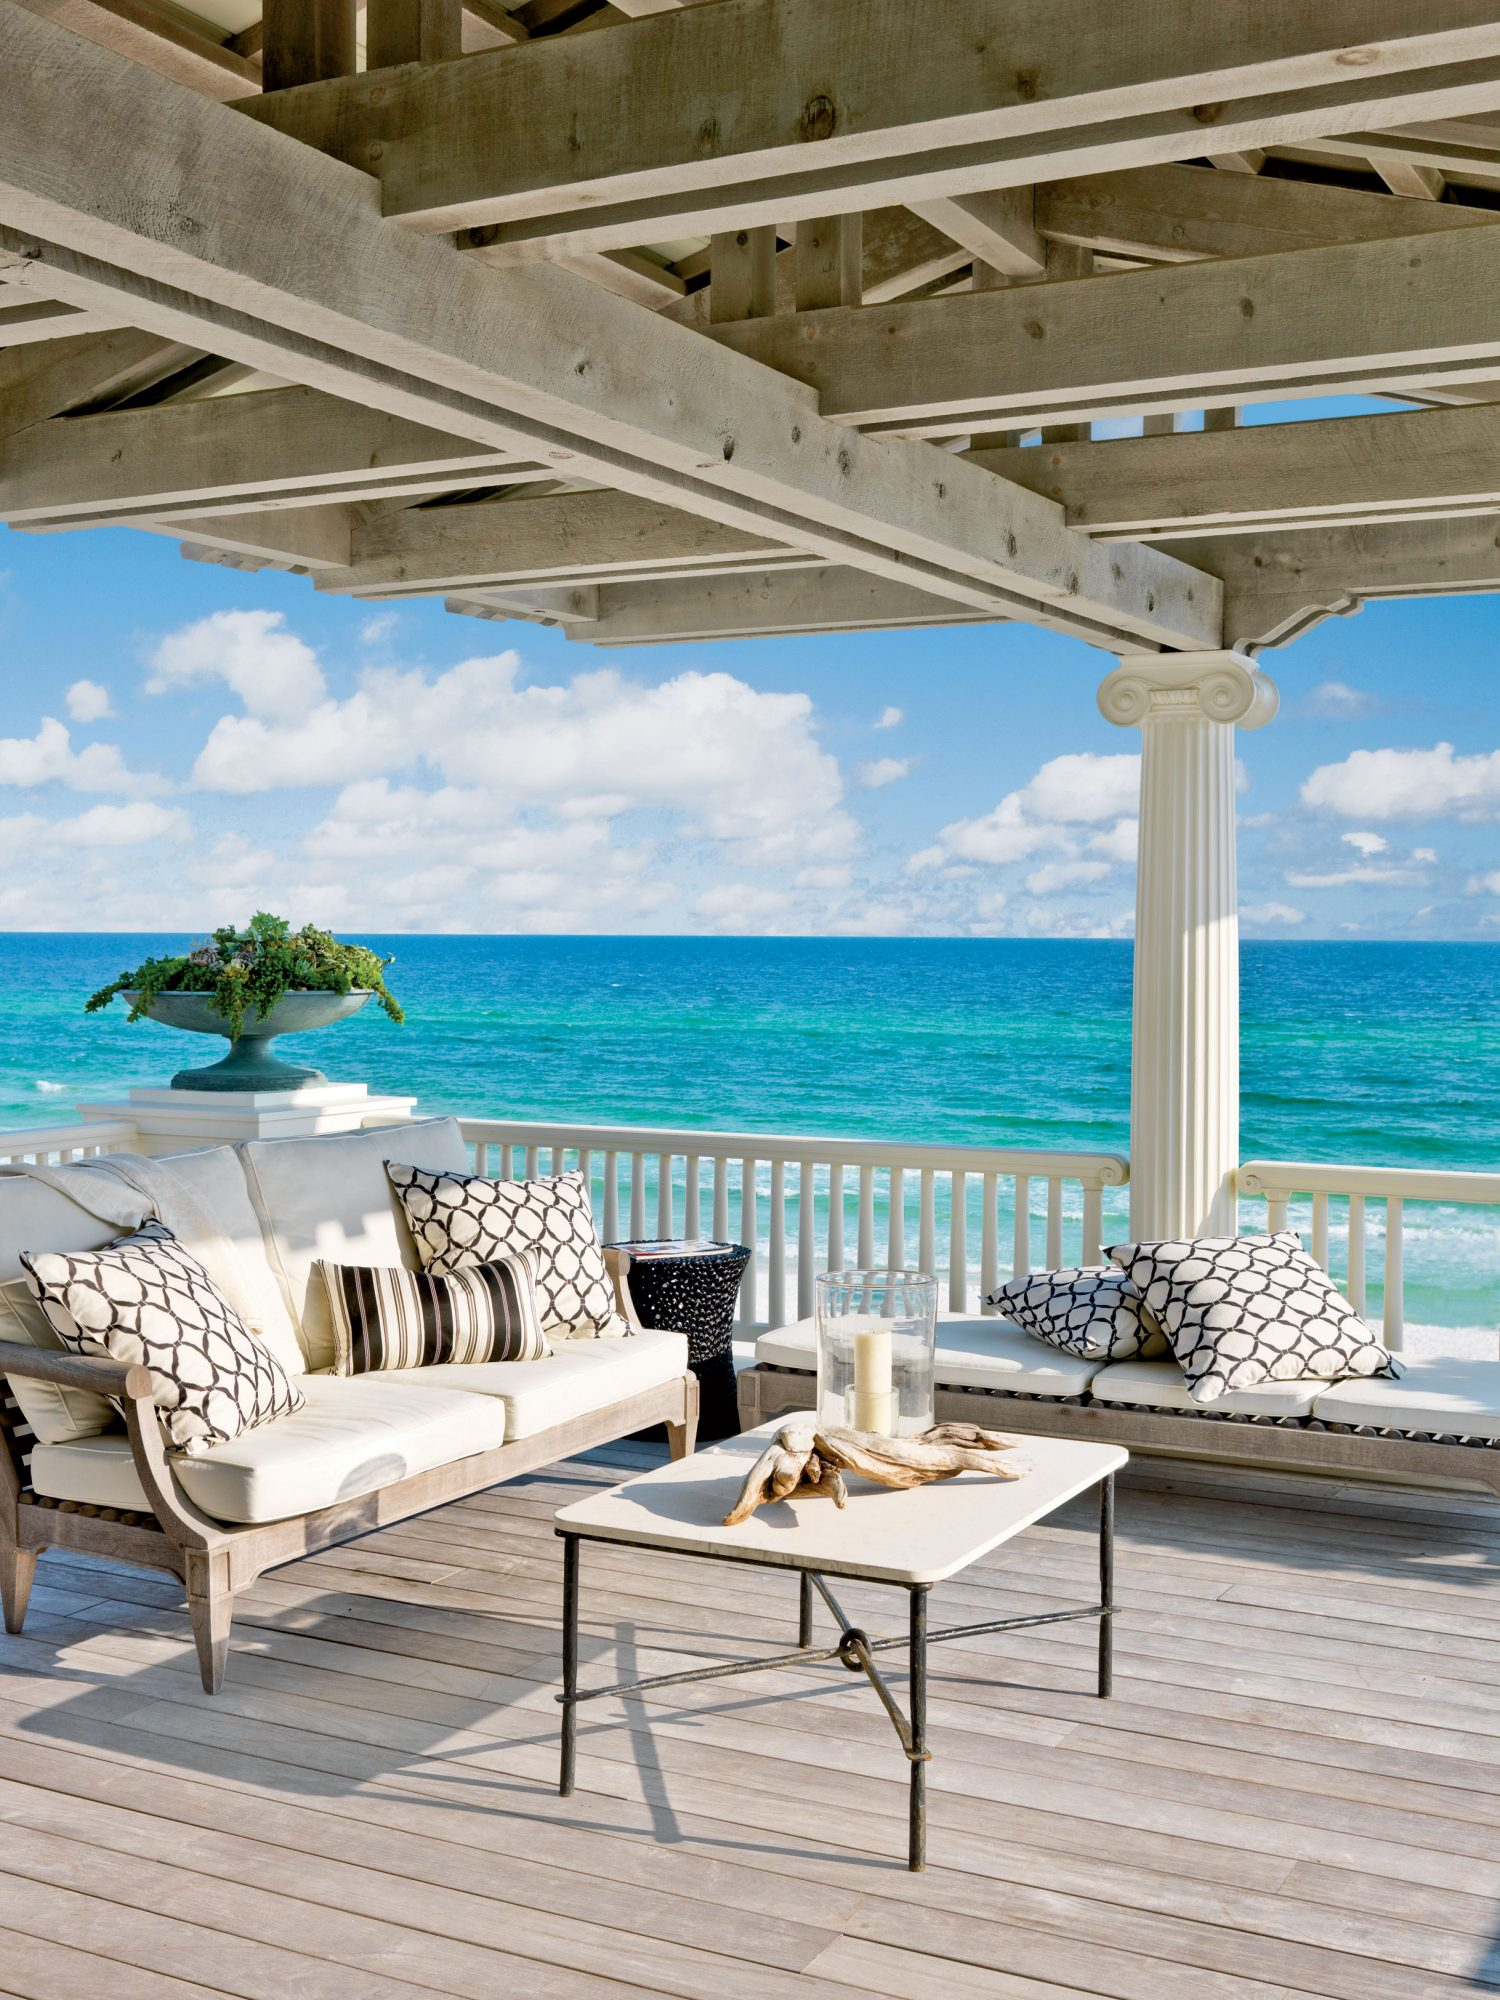 Contrasting building materials, like knotty wood beams and unfinished flooring are offset by Ionic fluted columns and classic railings for plenty of architectural interest on this porch. The décor leans toward neutral, letting the eye be drawn to the turquoise and blue water beyond.